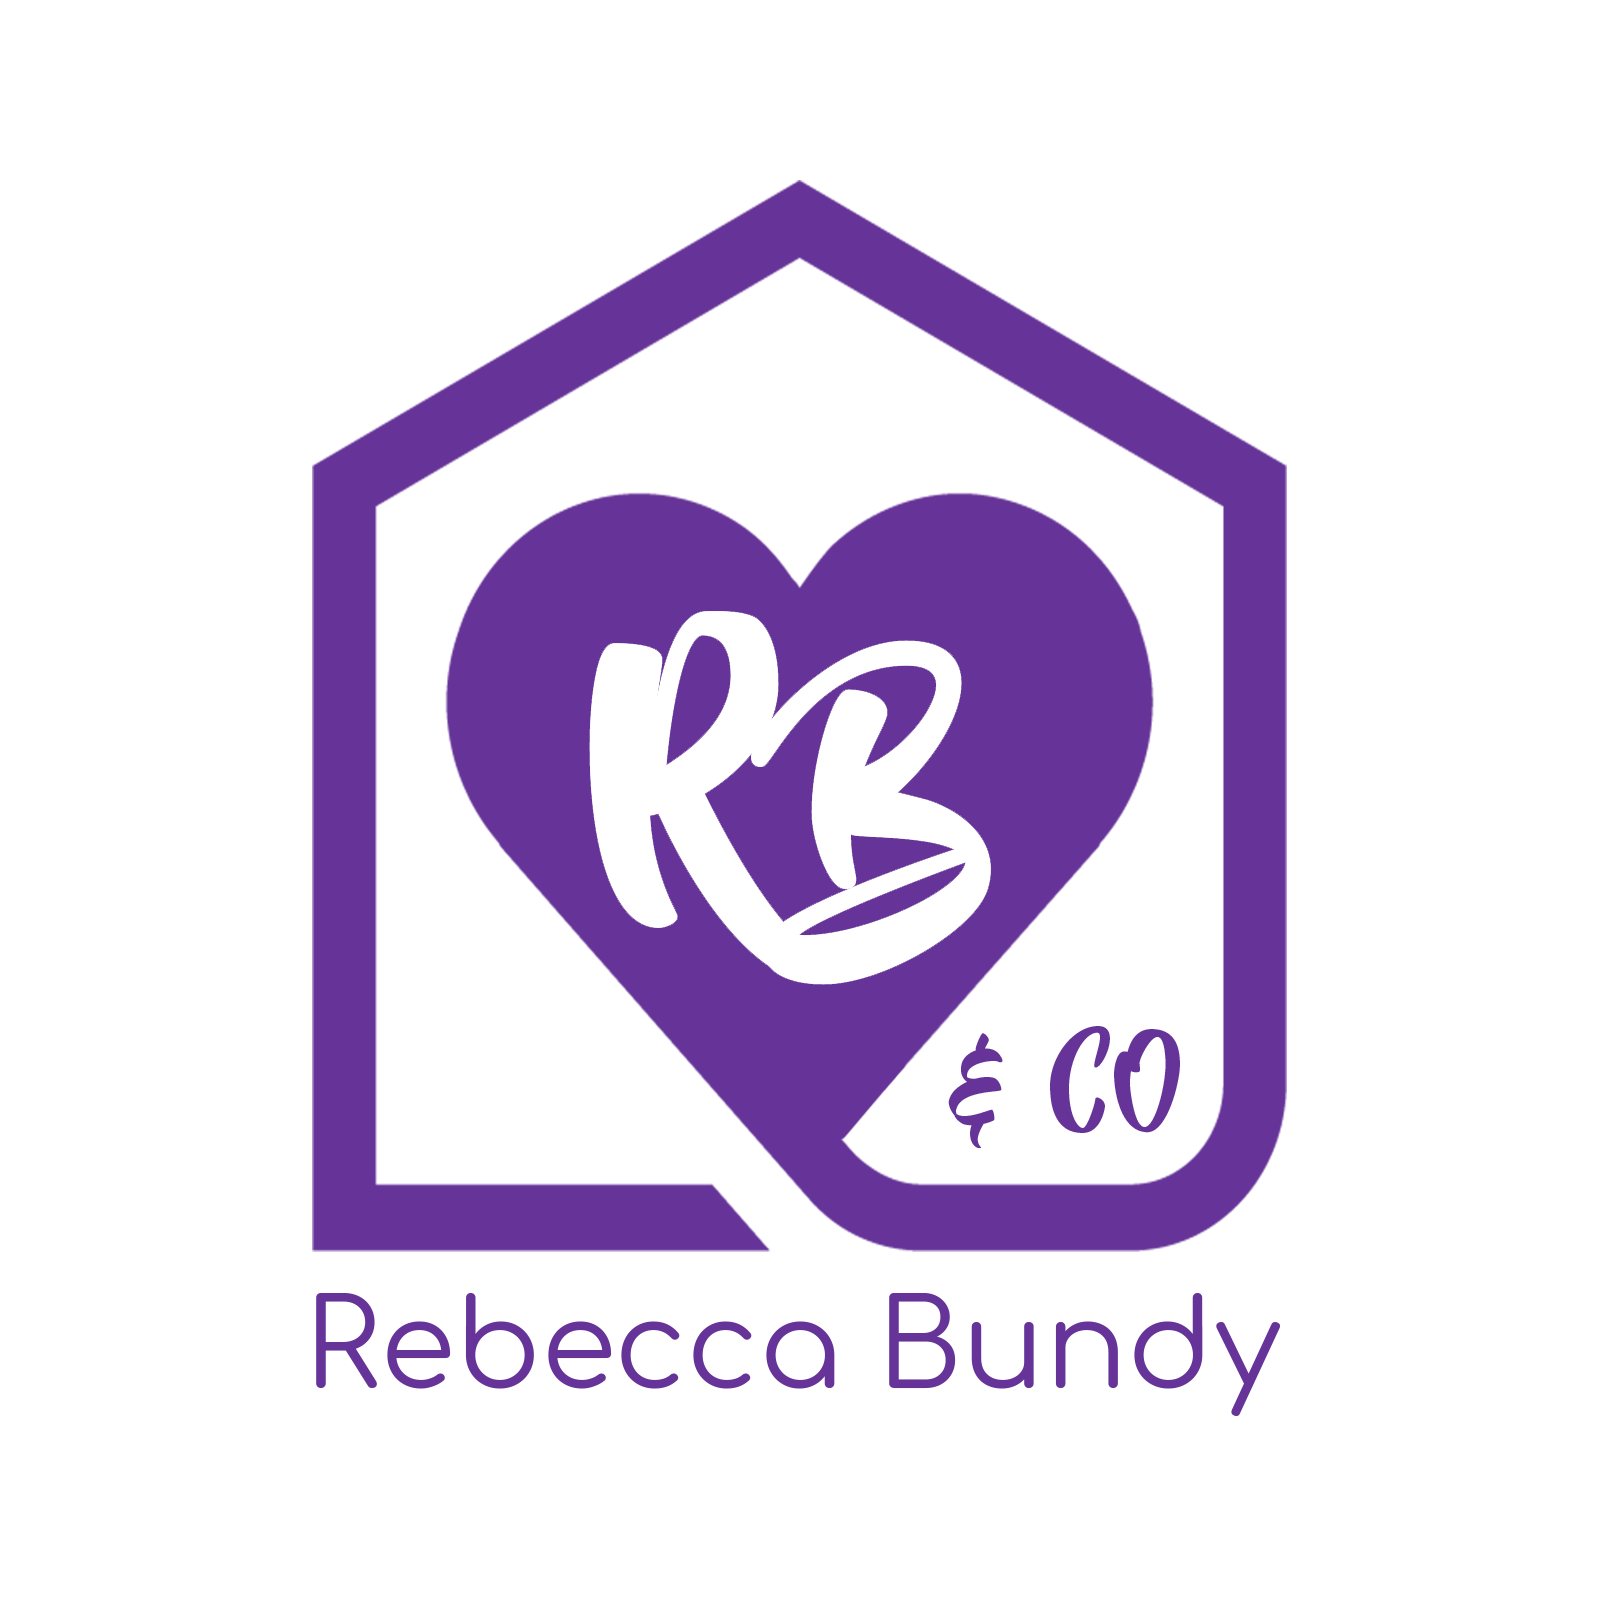 Rebecca Bundy